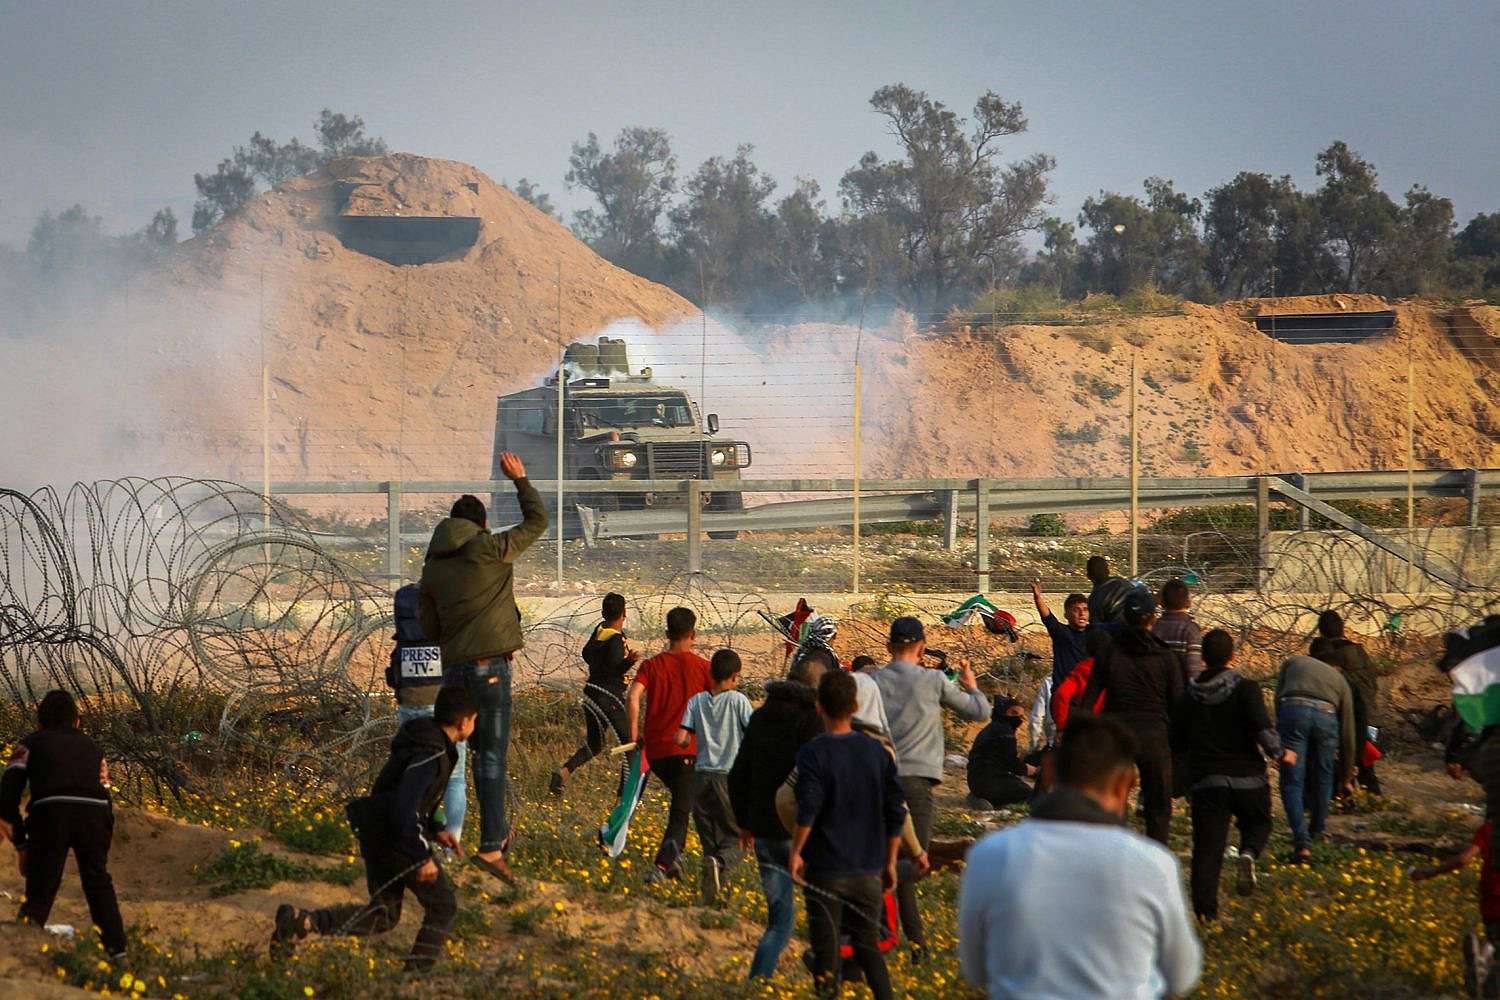 Palestinian protesters clash with Israeli security forces during the Great March of Return, near Israel-Gaza fence, east of Rafah, in the southern Gaza Strip, April 5, 2019. (Abed Rahim Khatib/Flash90)